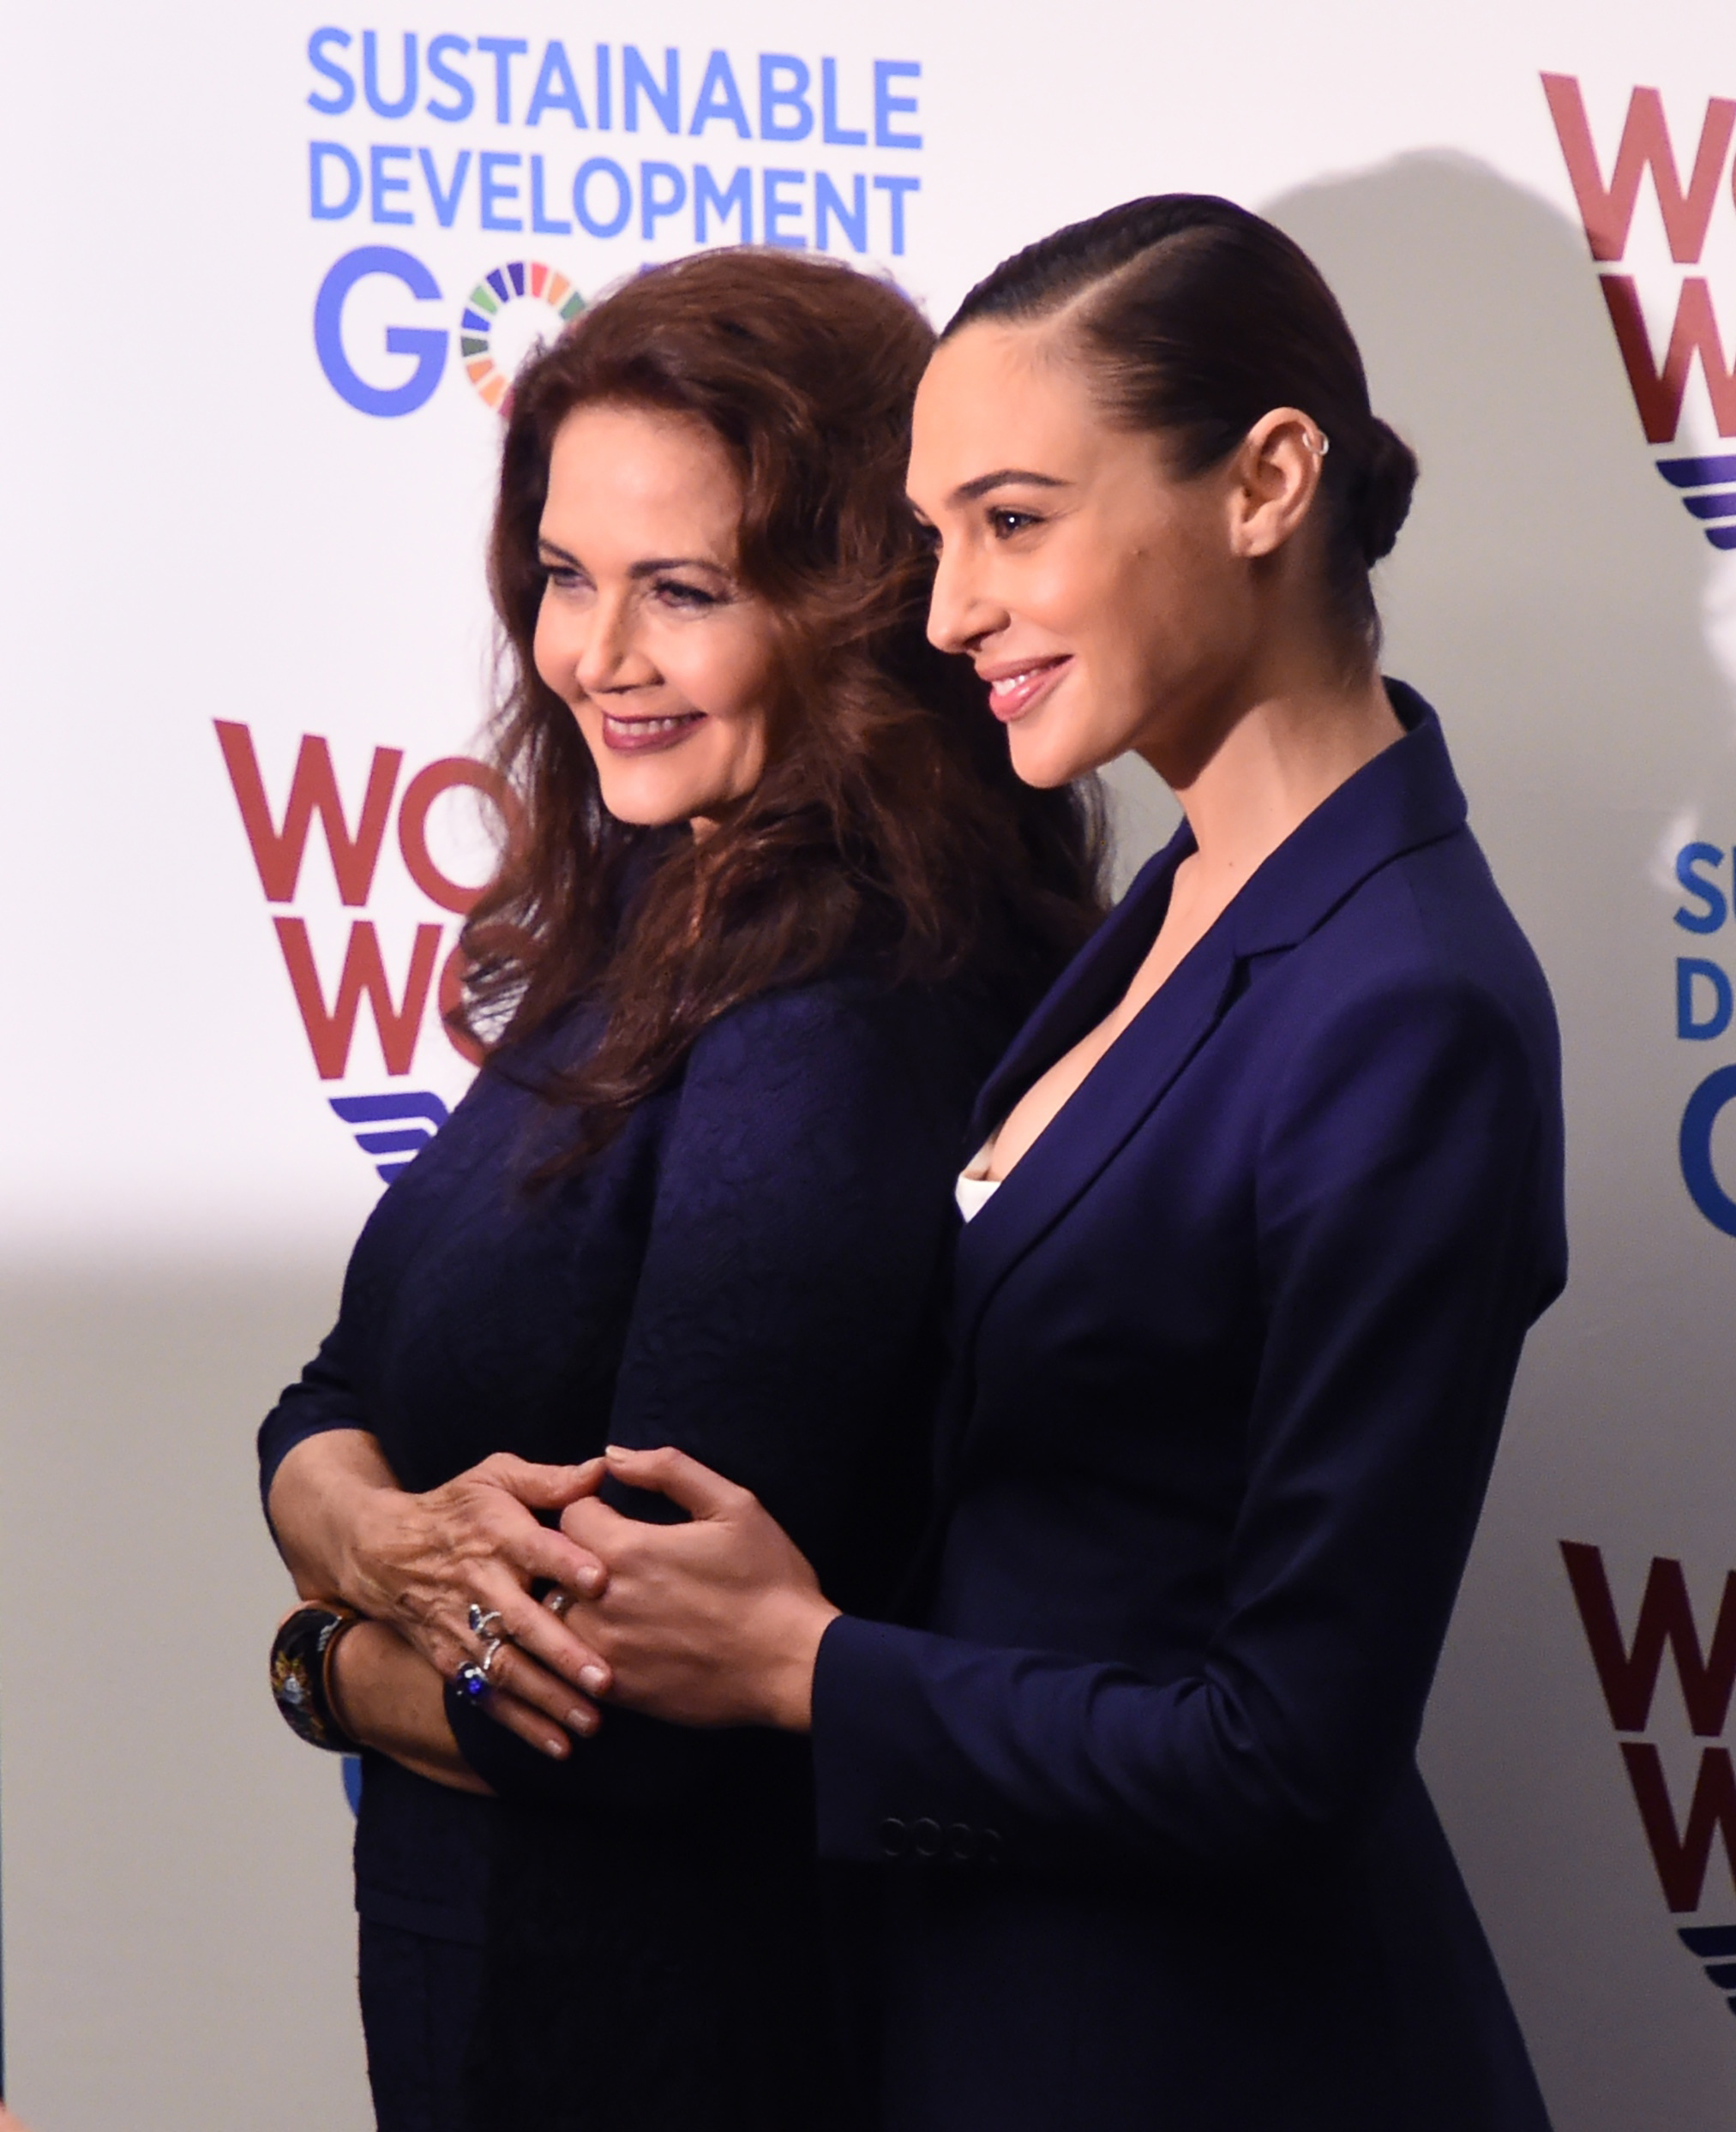 Lynda Carter with Gal Gadot at the UN